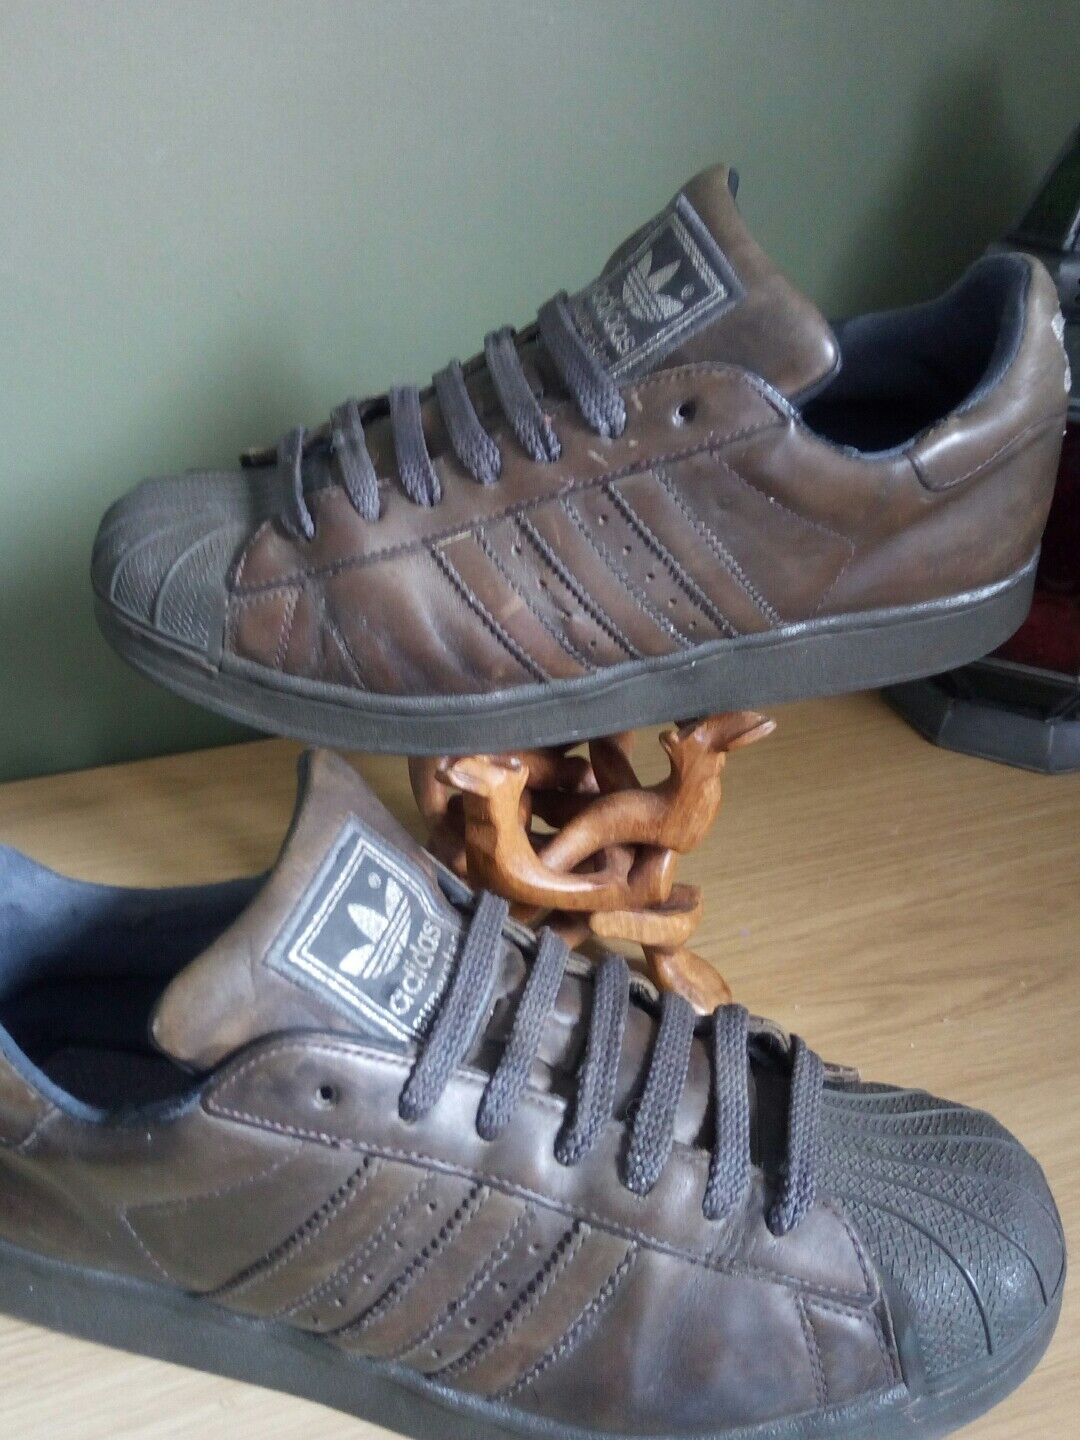 Adidas Superstar uK 9s Olive Green Beeswax Leather Comfortable and good-looking